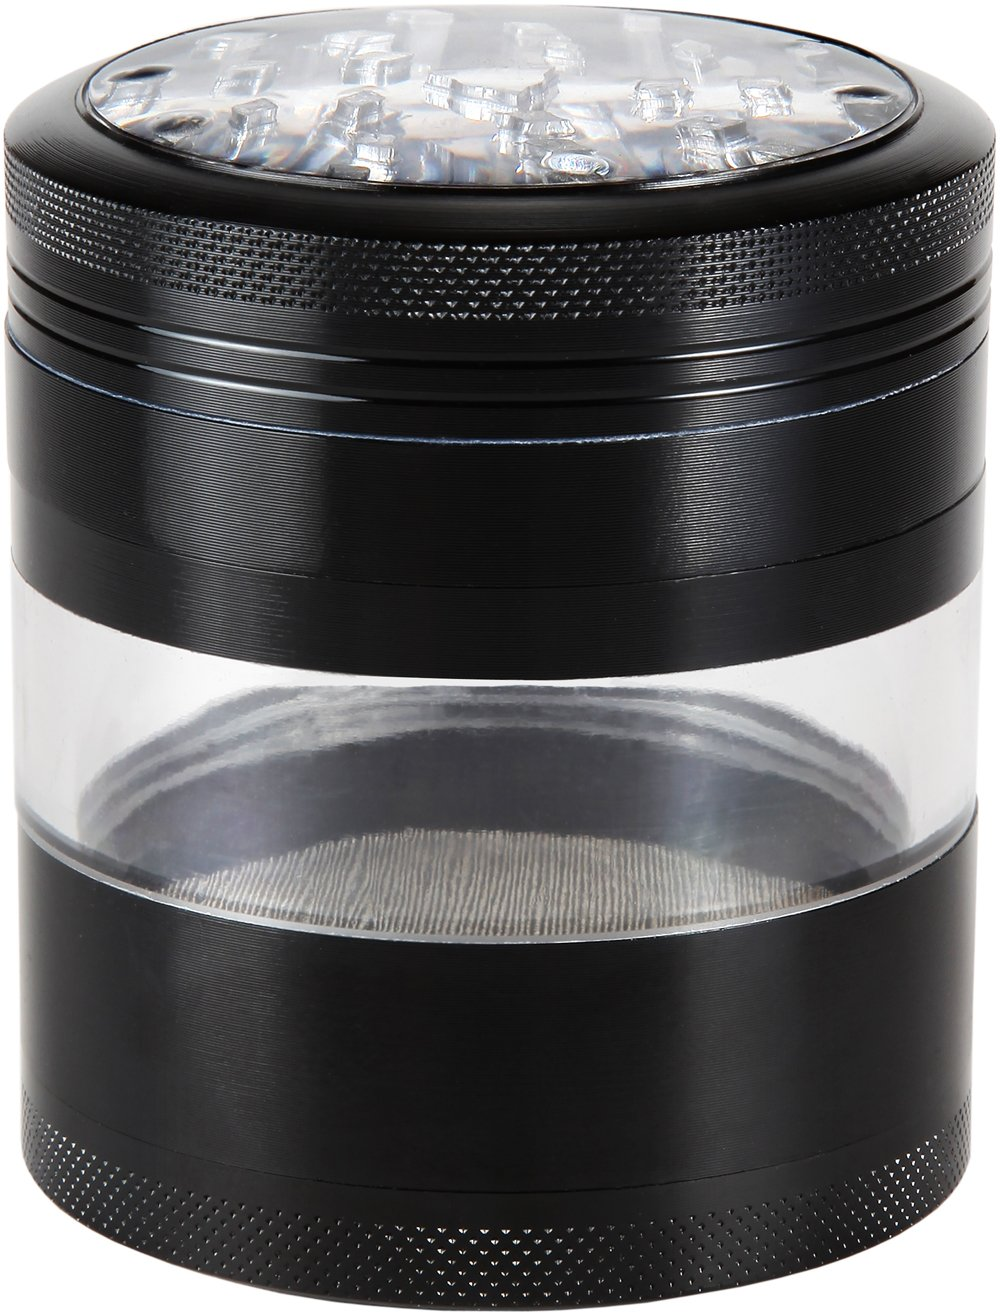 Zip Grinders #1 Best Rated Large Spice & Herb Grinder - Four Piece with Pollen Catcher - Premium Aerospace Grade Aluminum 3.25 Inches Tall (Black) Buy Now With Confidence!